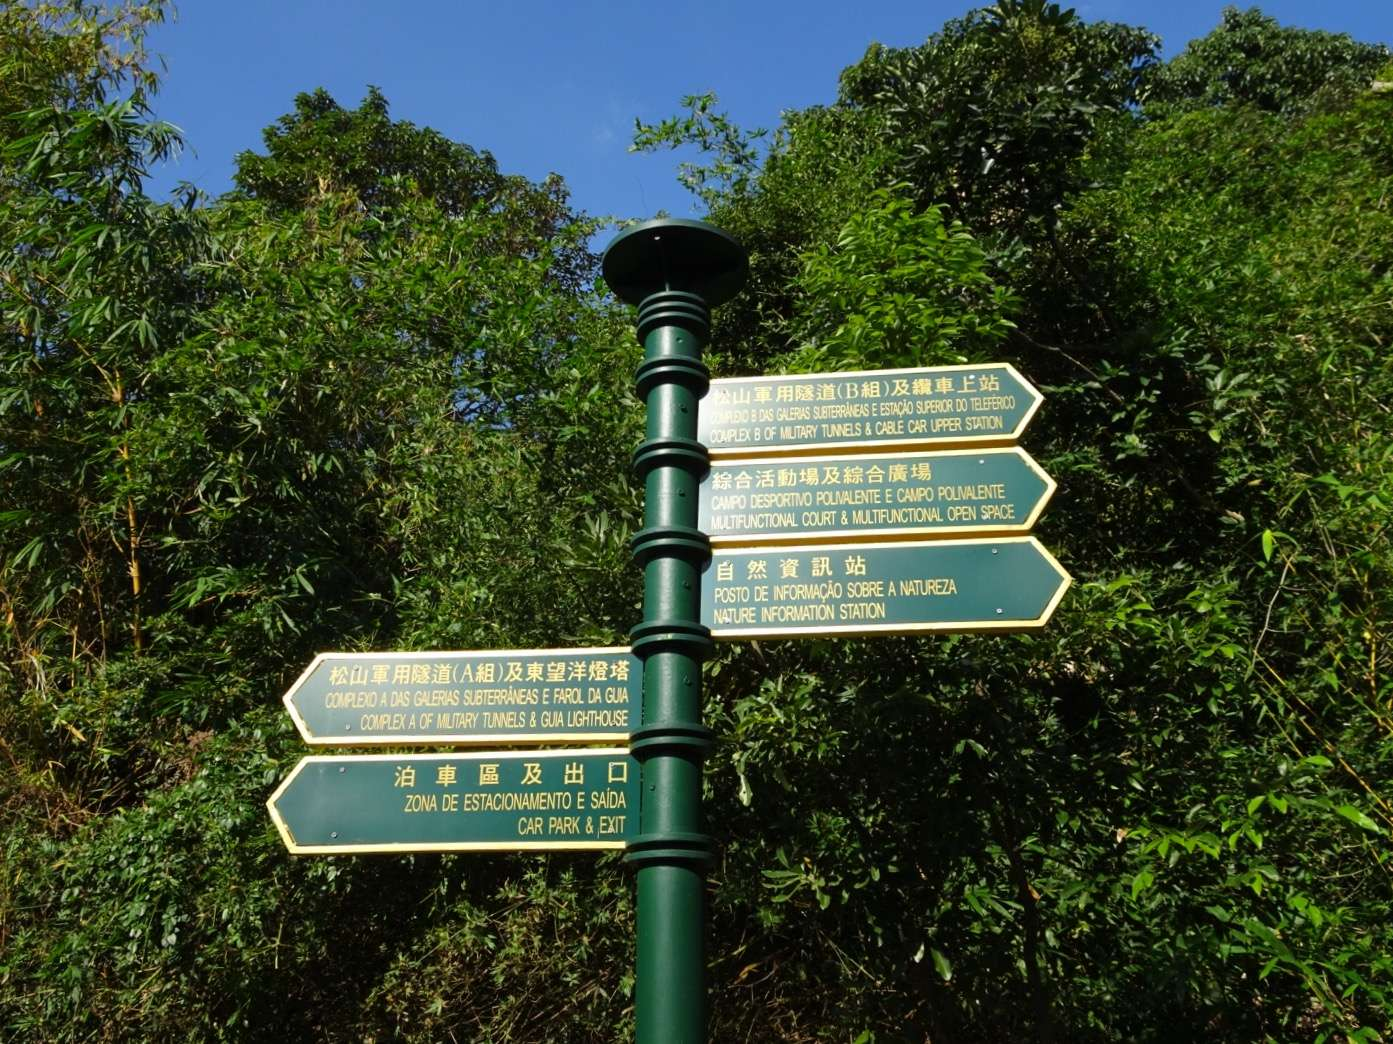 Signs at Guia Hill